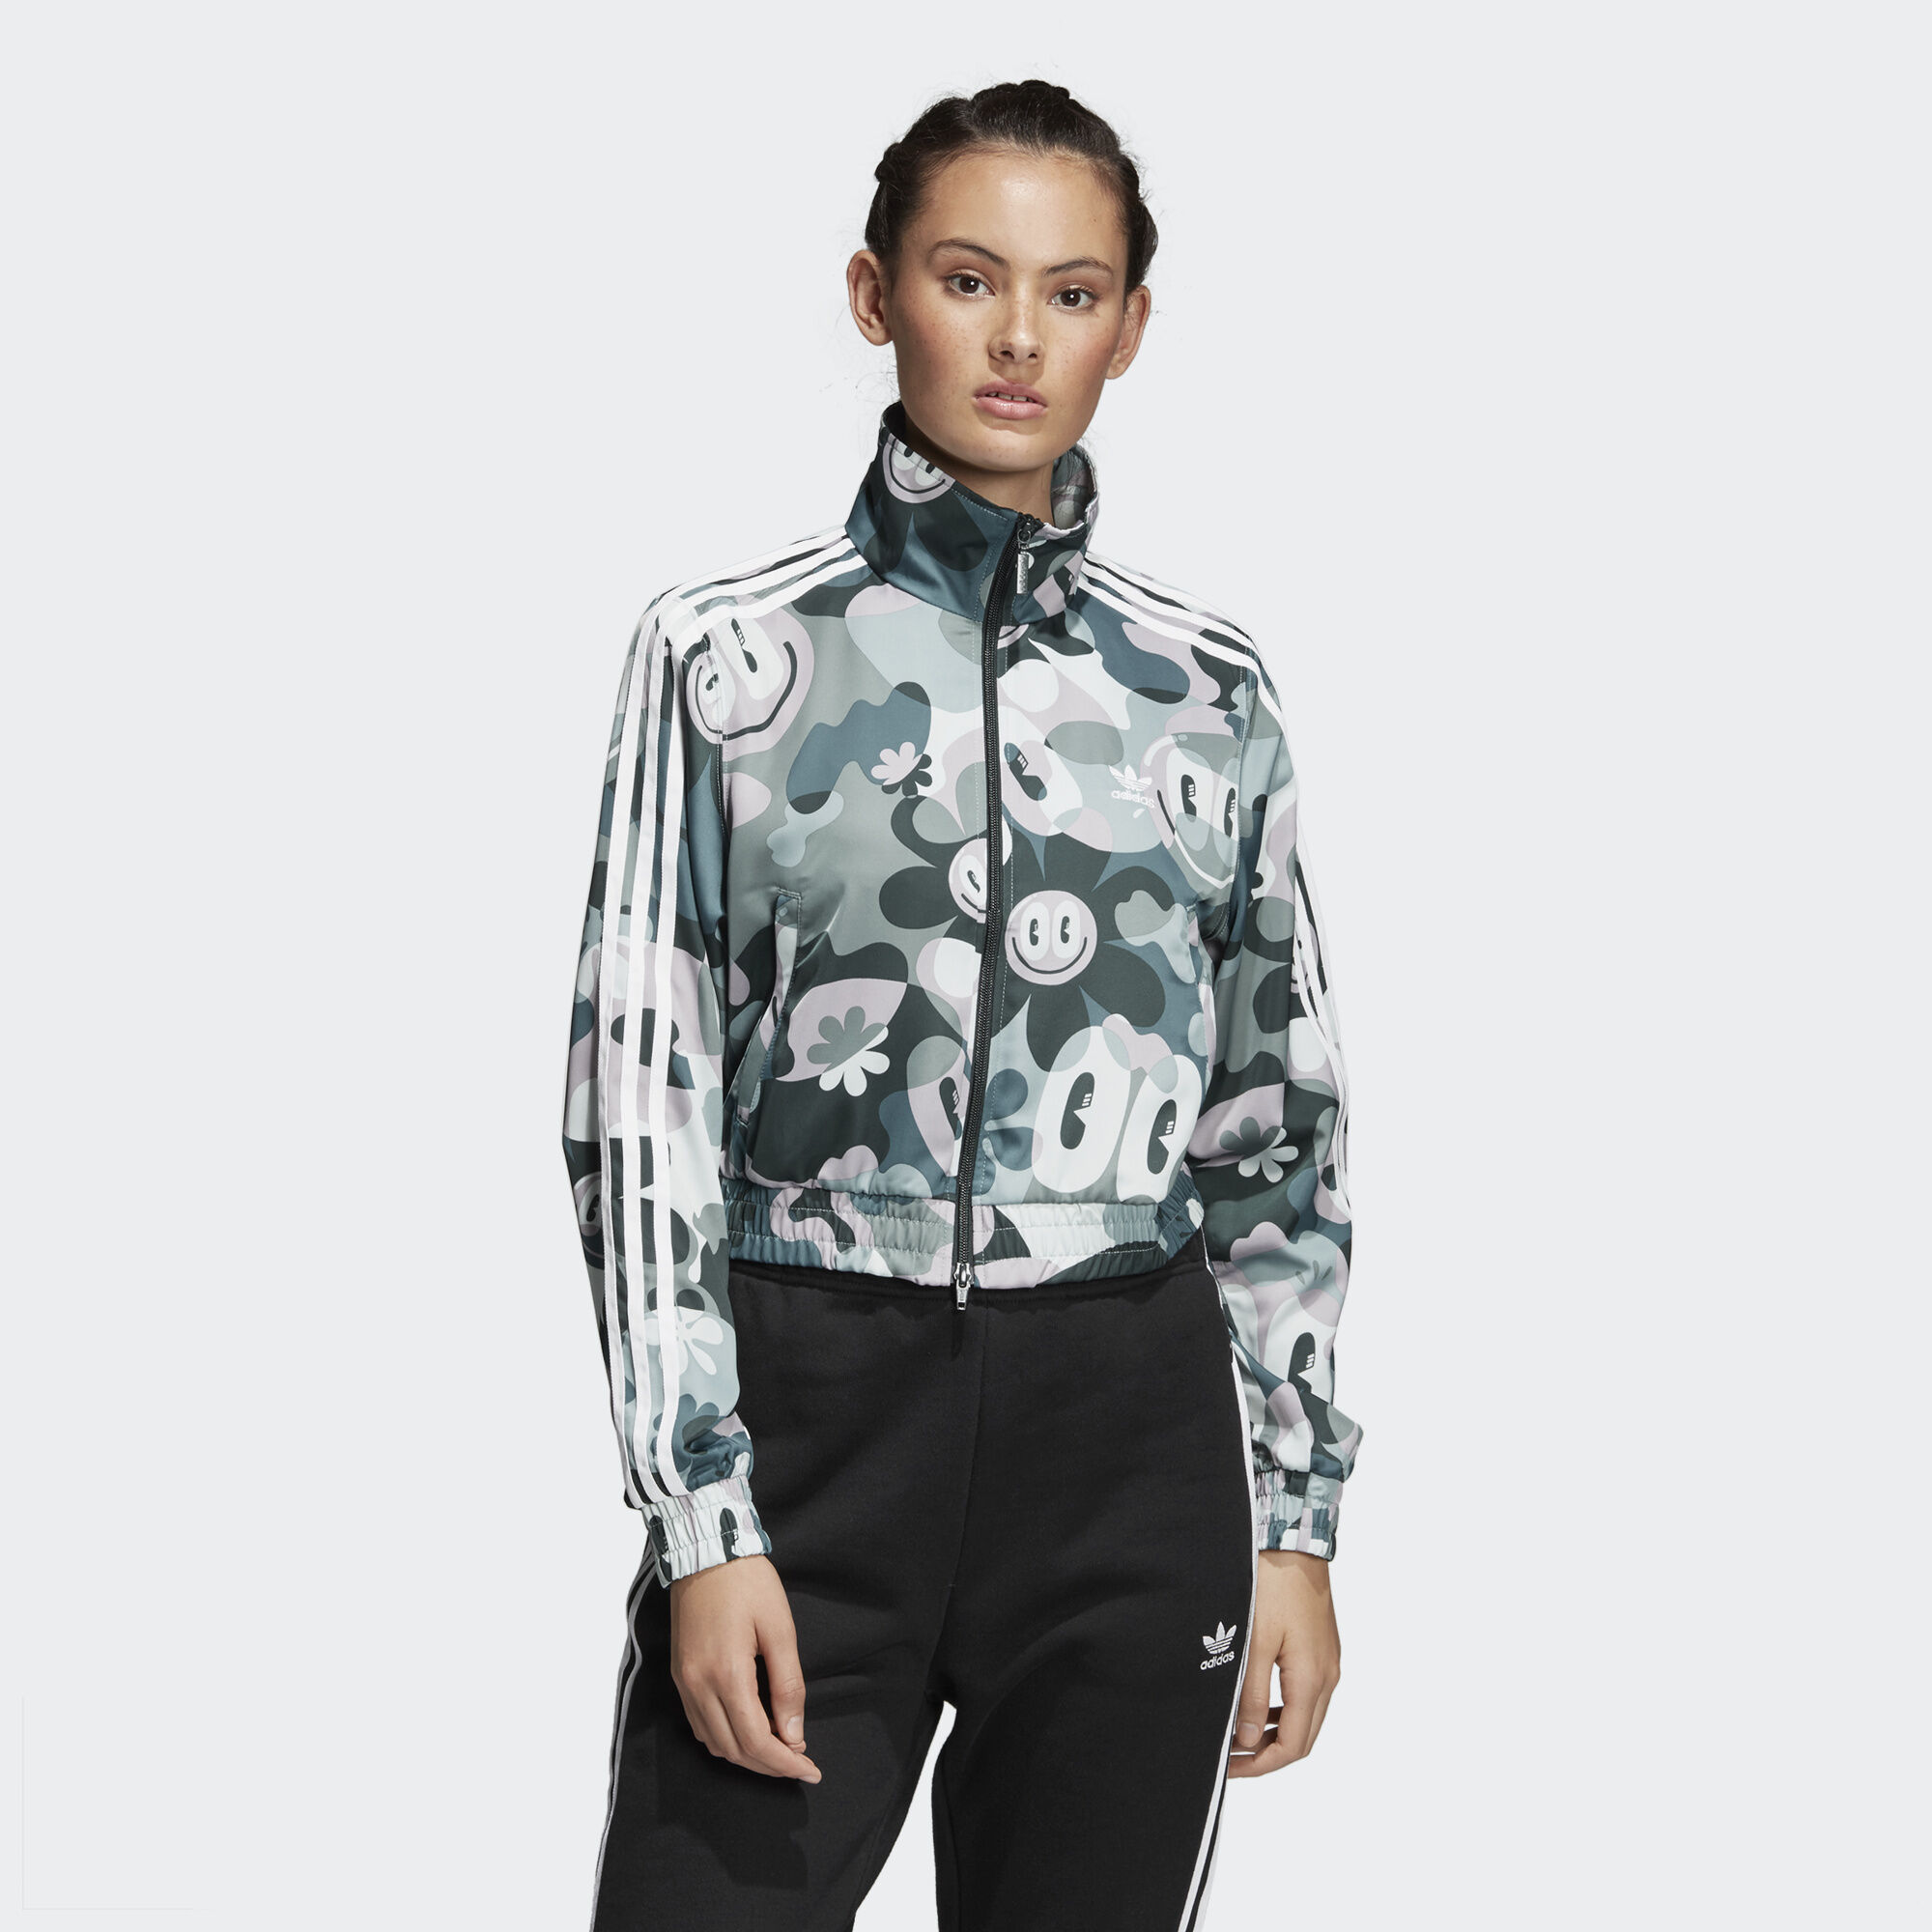 Top Bb Adidas Bb Track Top Multicolor Adidas Europe Africa